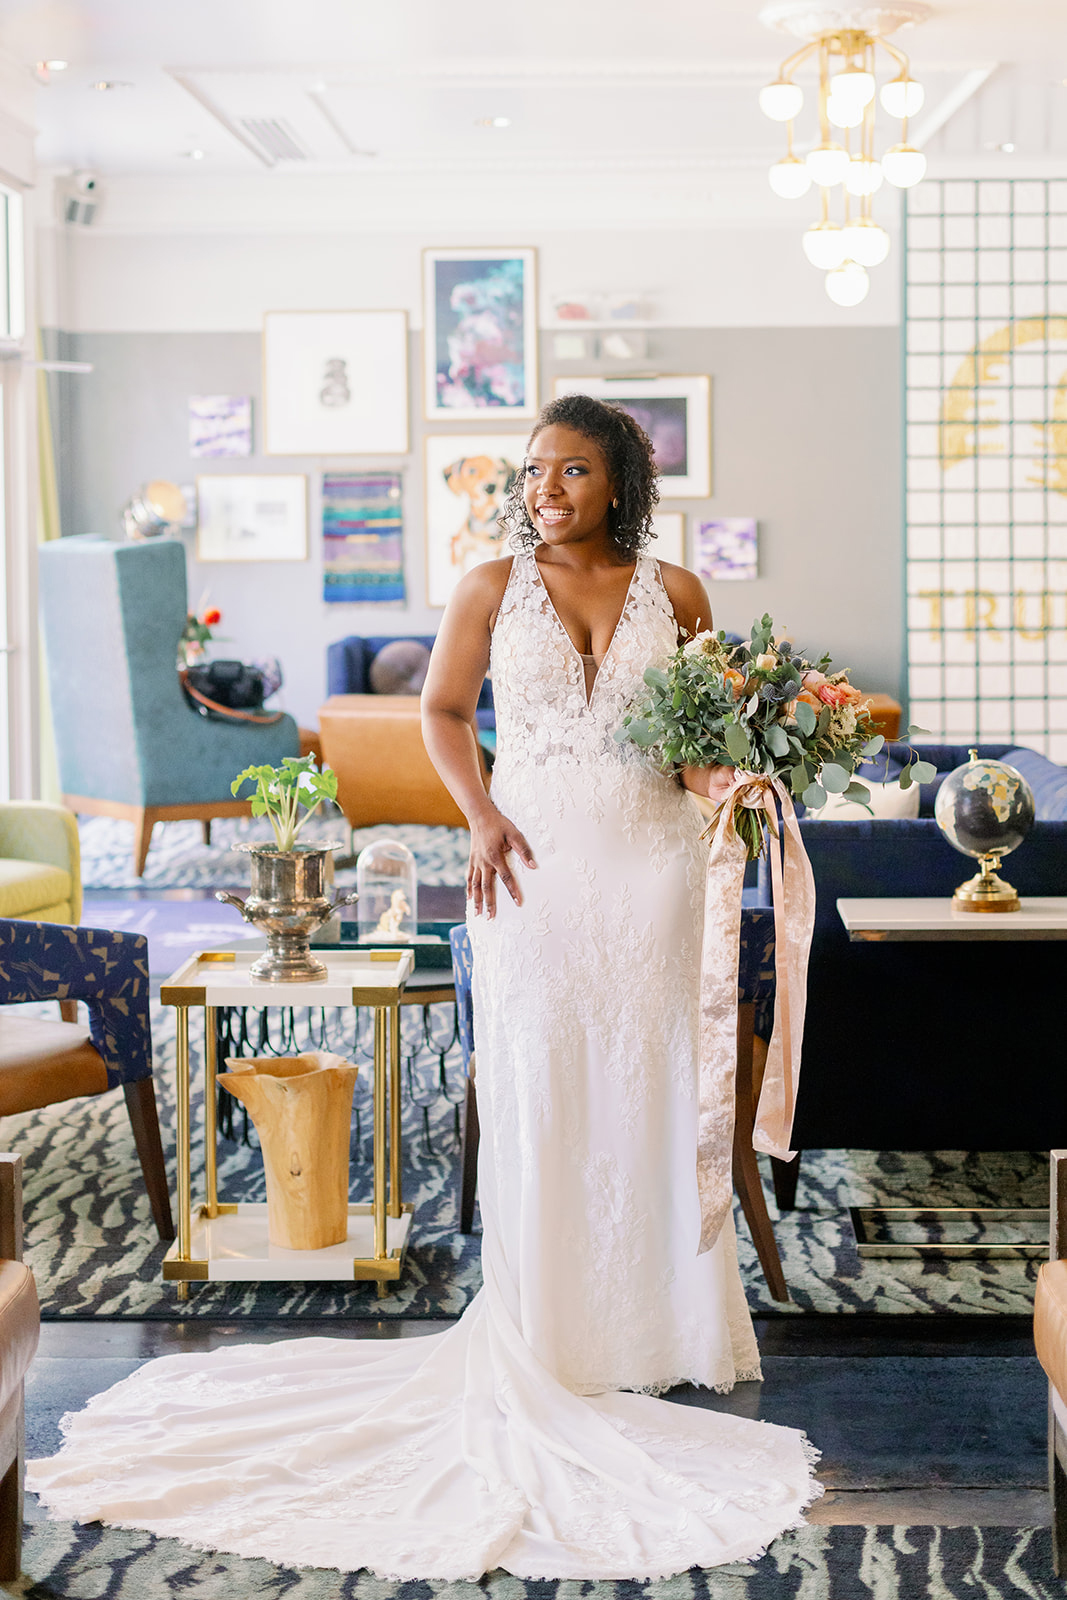 bride in white lace wedding dress in colorful room